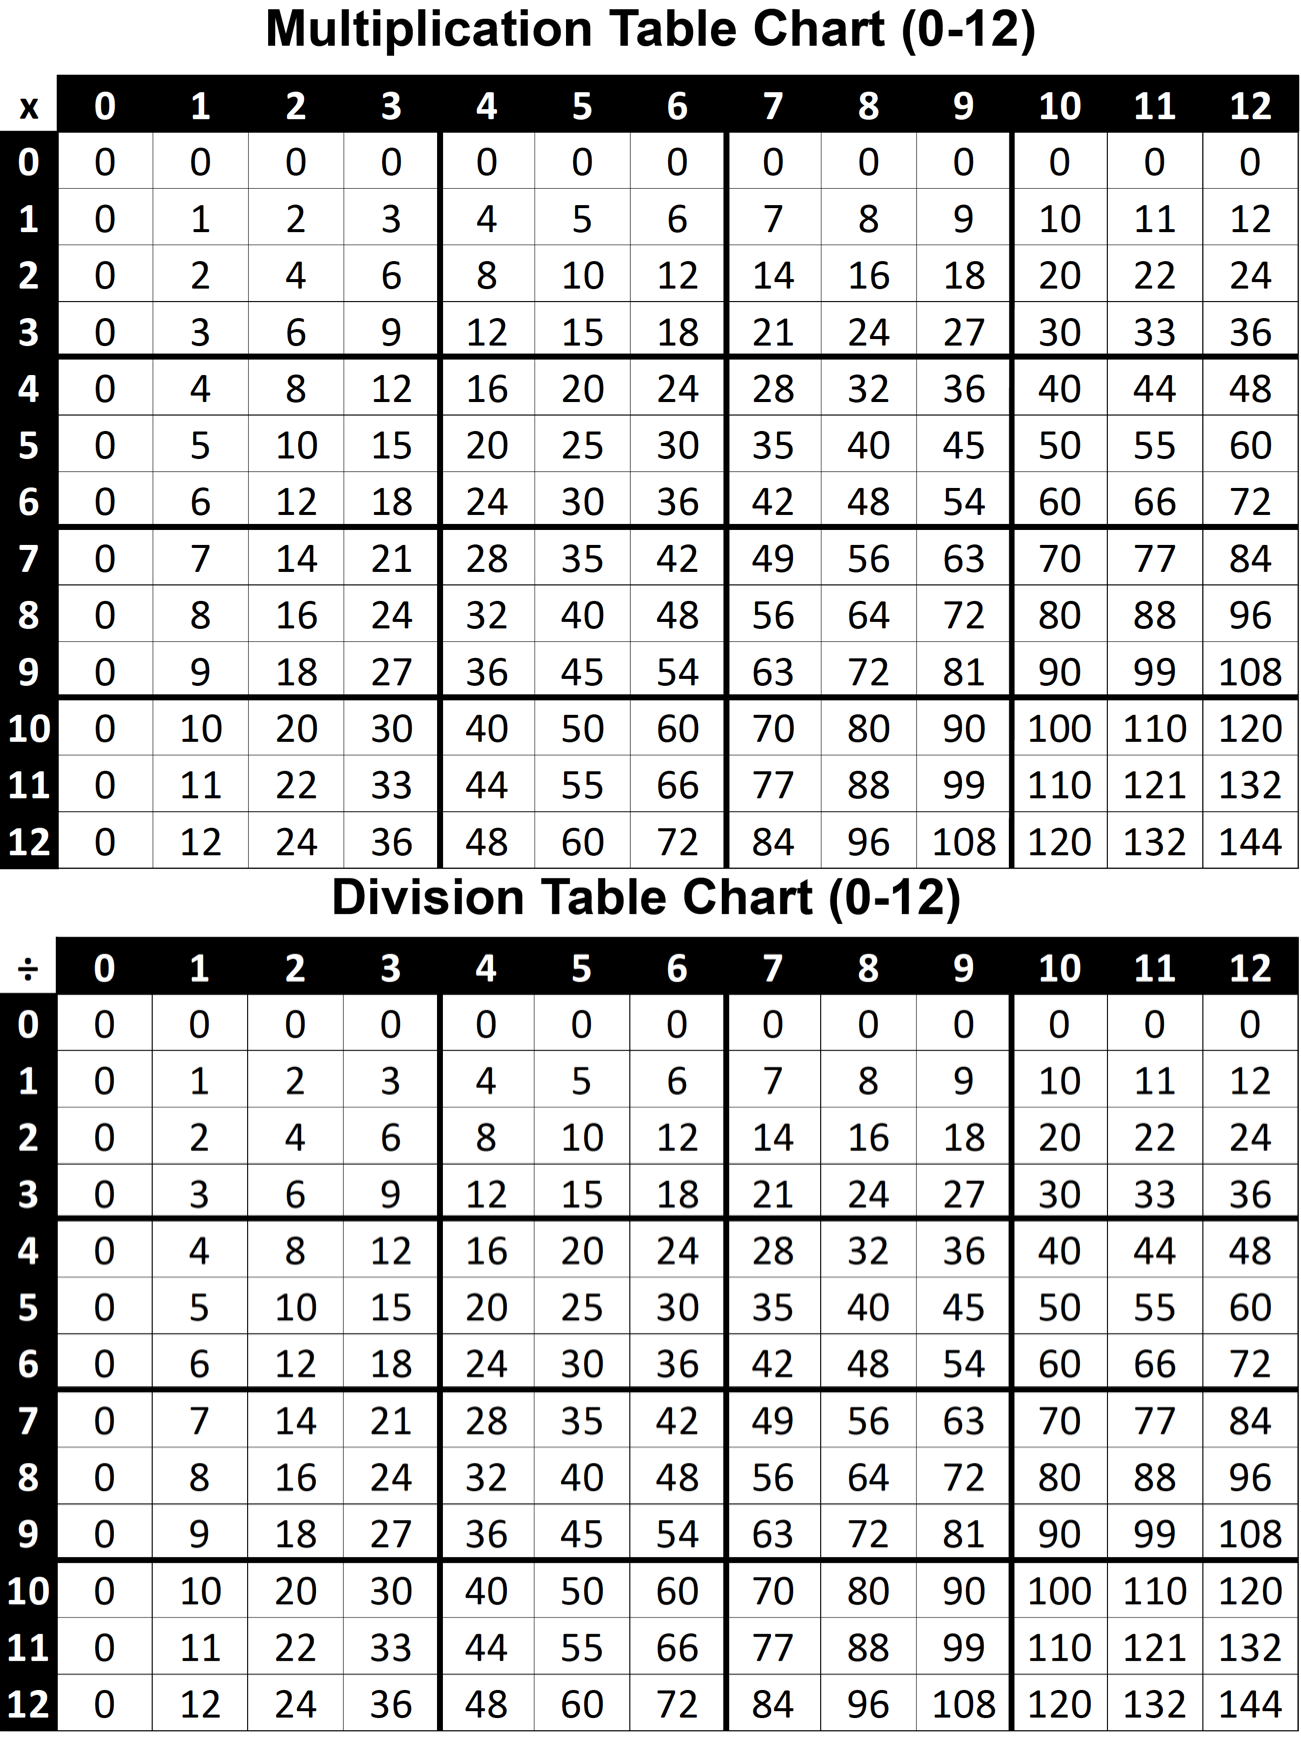 Multiplication & Division Table Charts 0-12 Printable PDF (FREE)